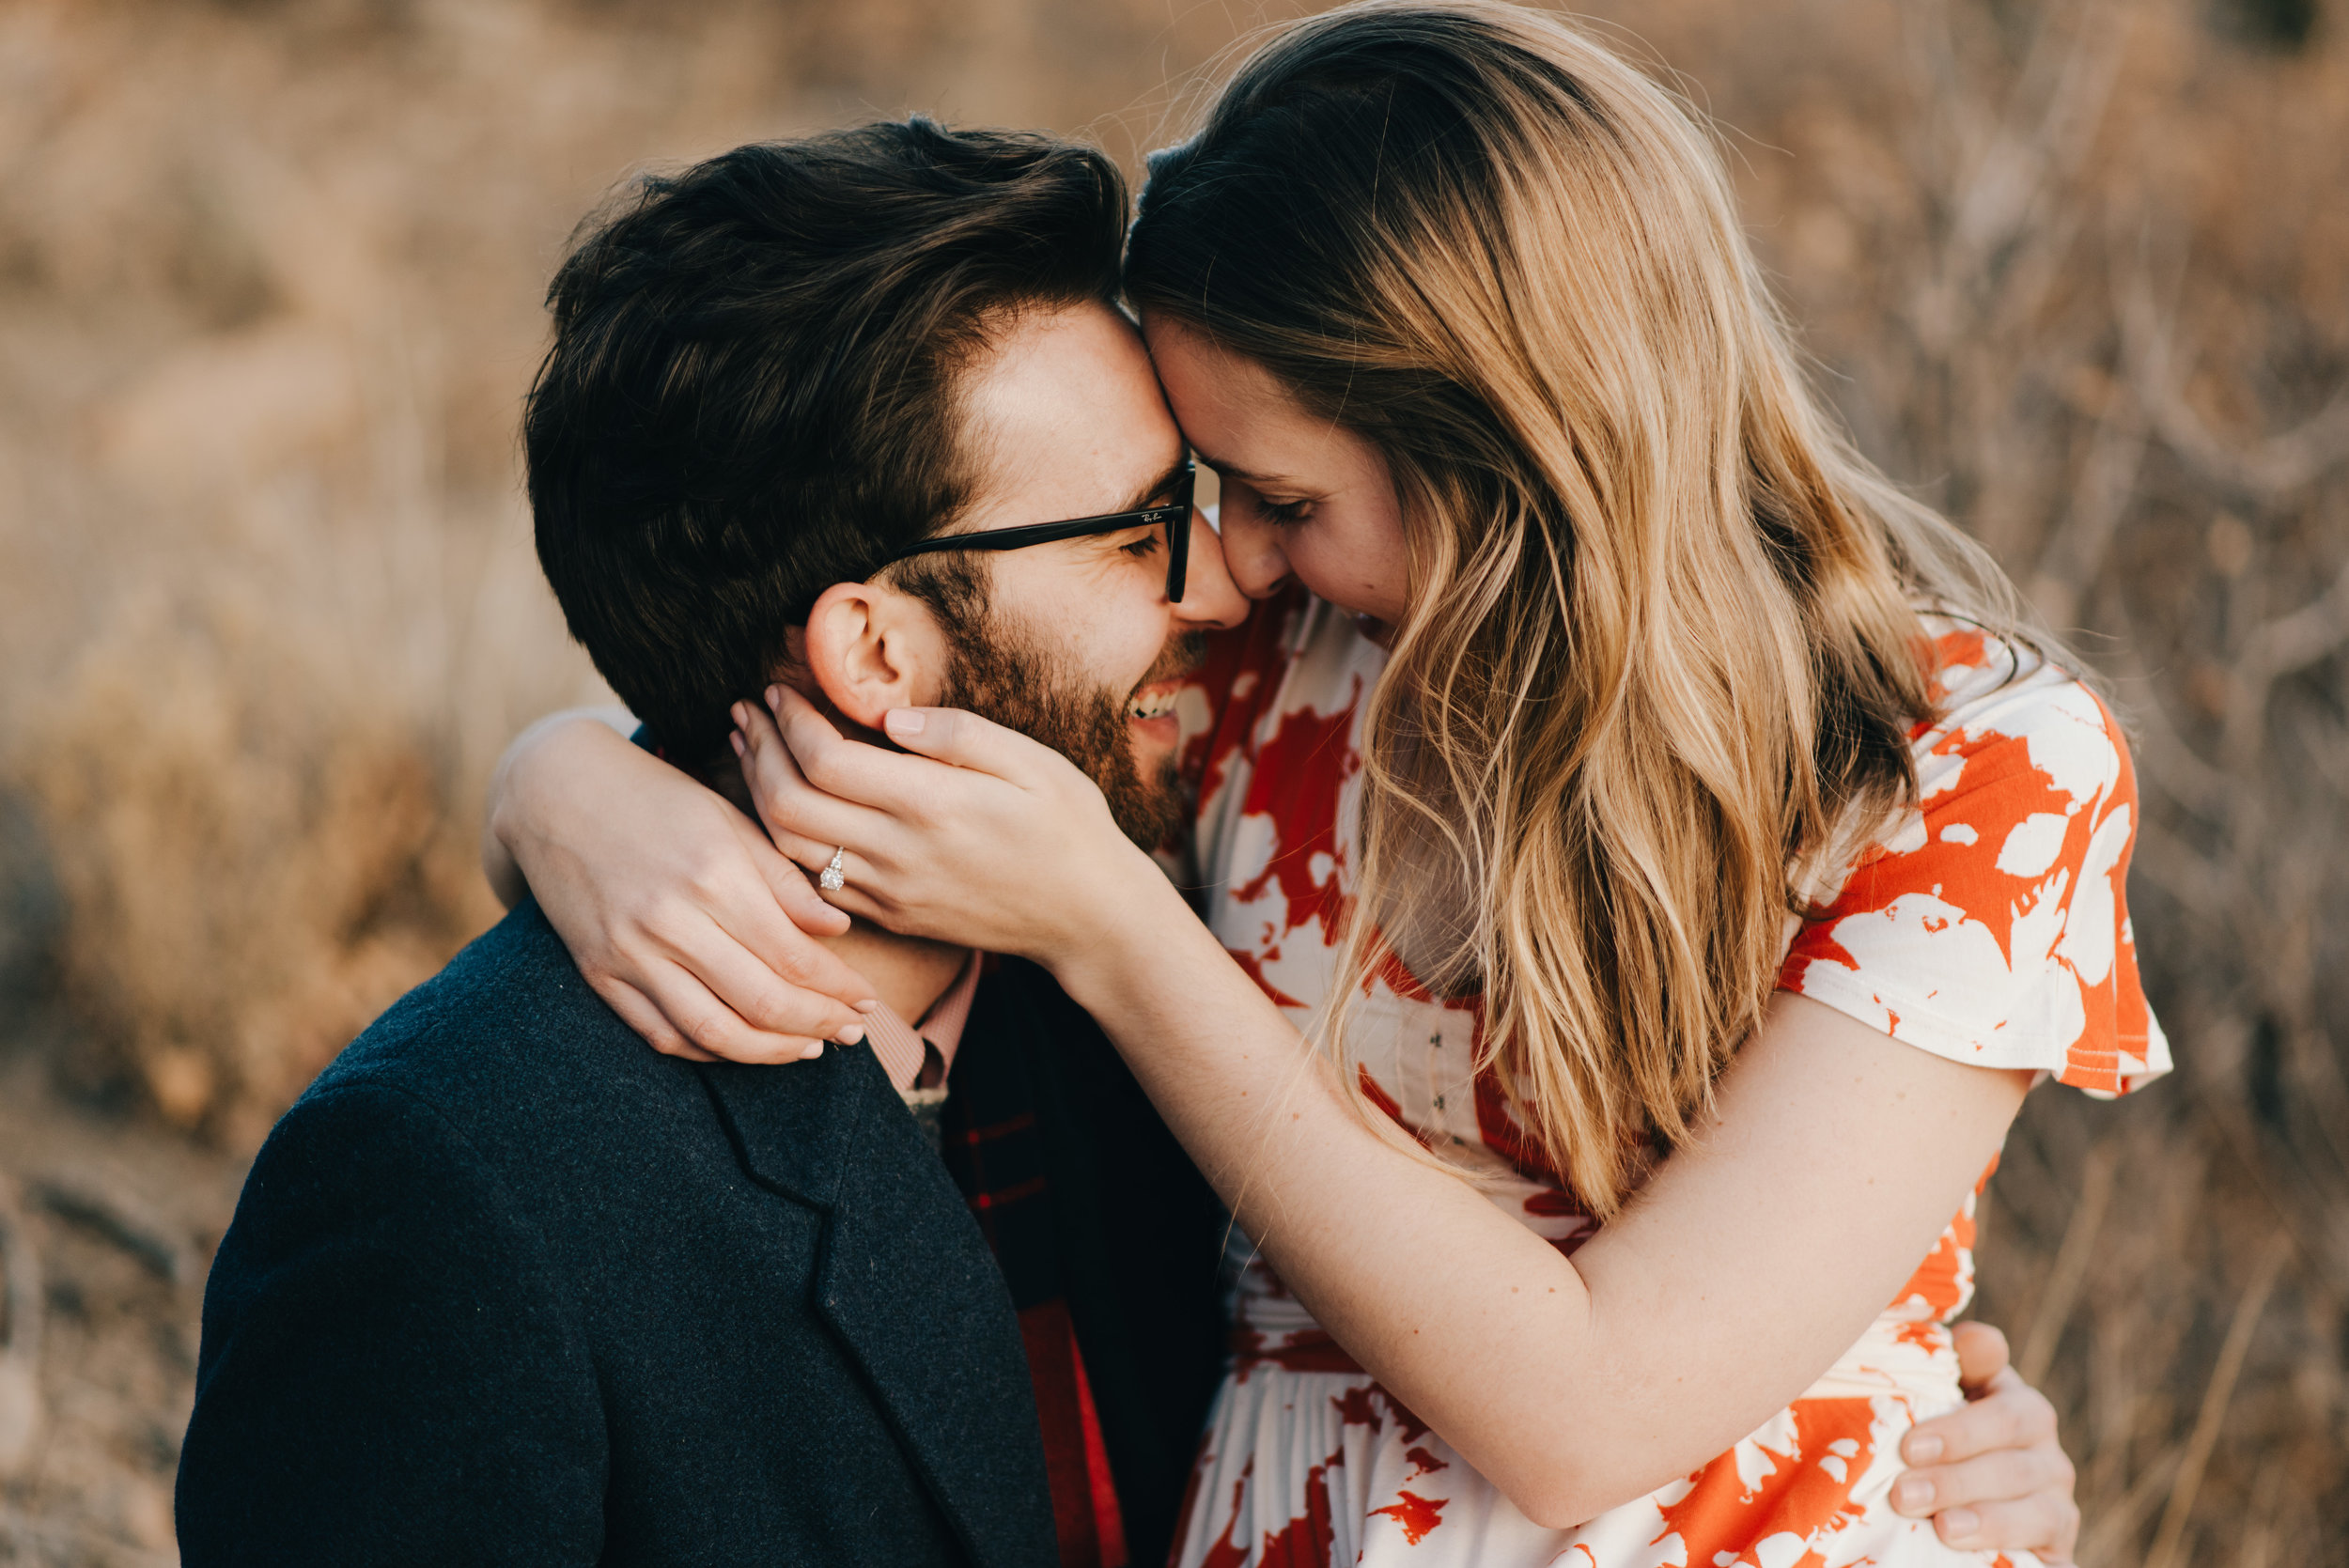 Rachel and Ted snuggling during their engagement session at Garden of the Gods in Colorado Springs.